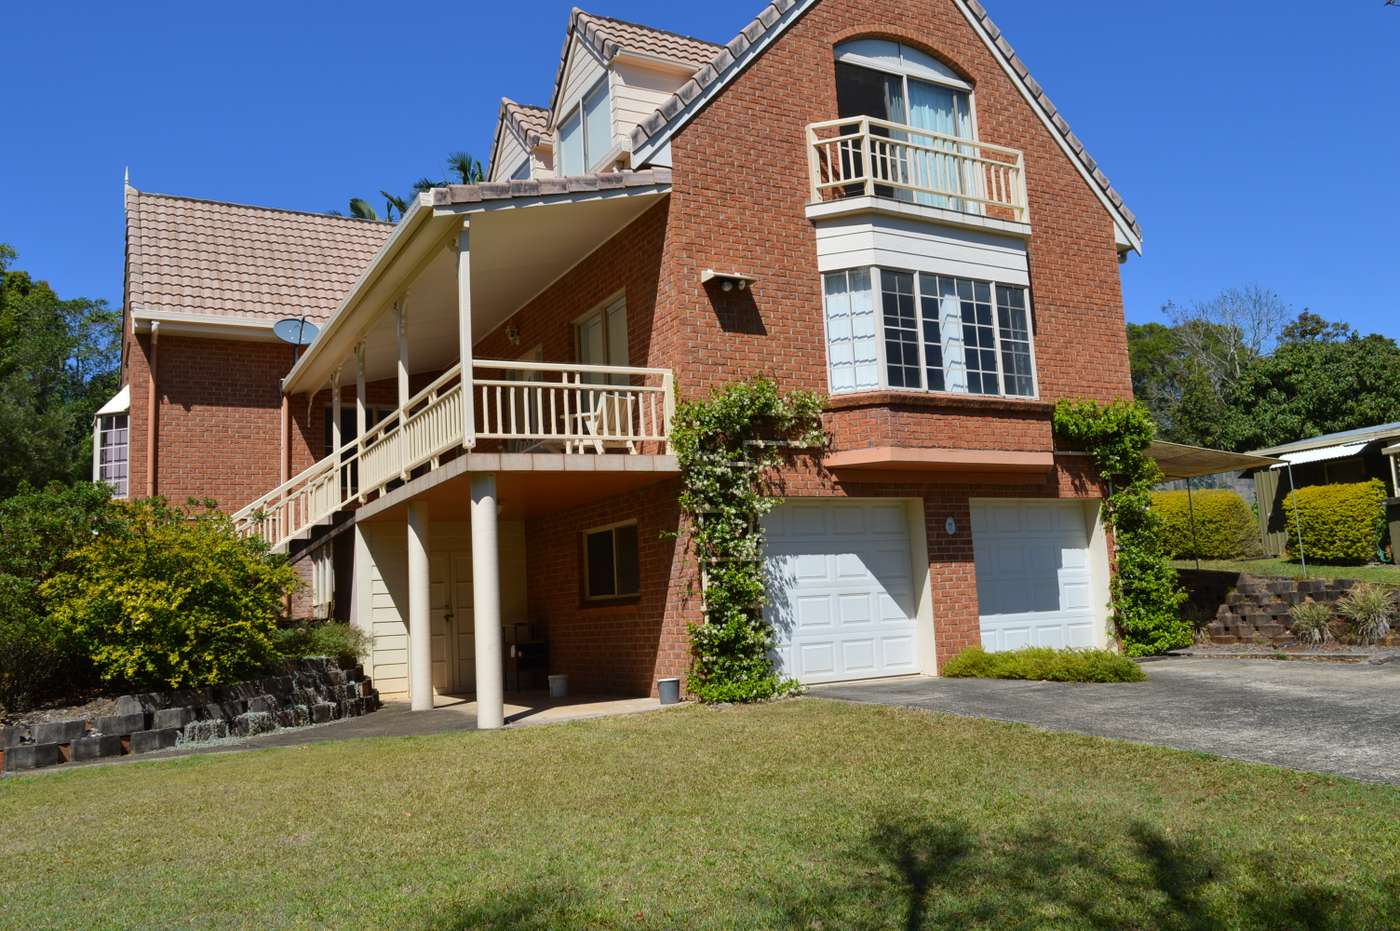 Main view of Homely house listing, 18 Treehaven Way, Maleny, QLD 4552